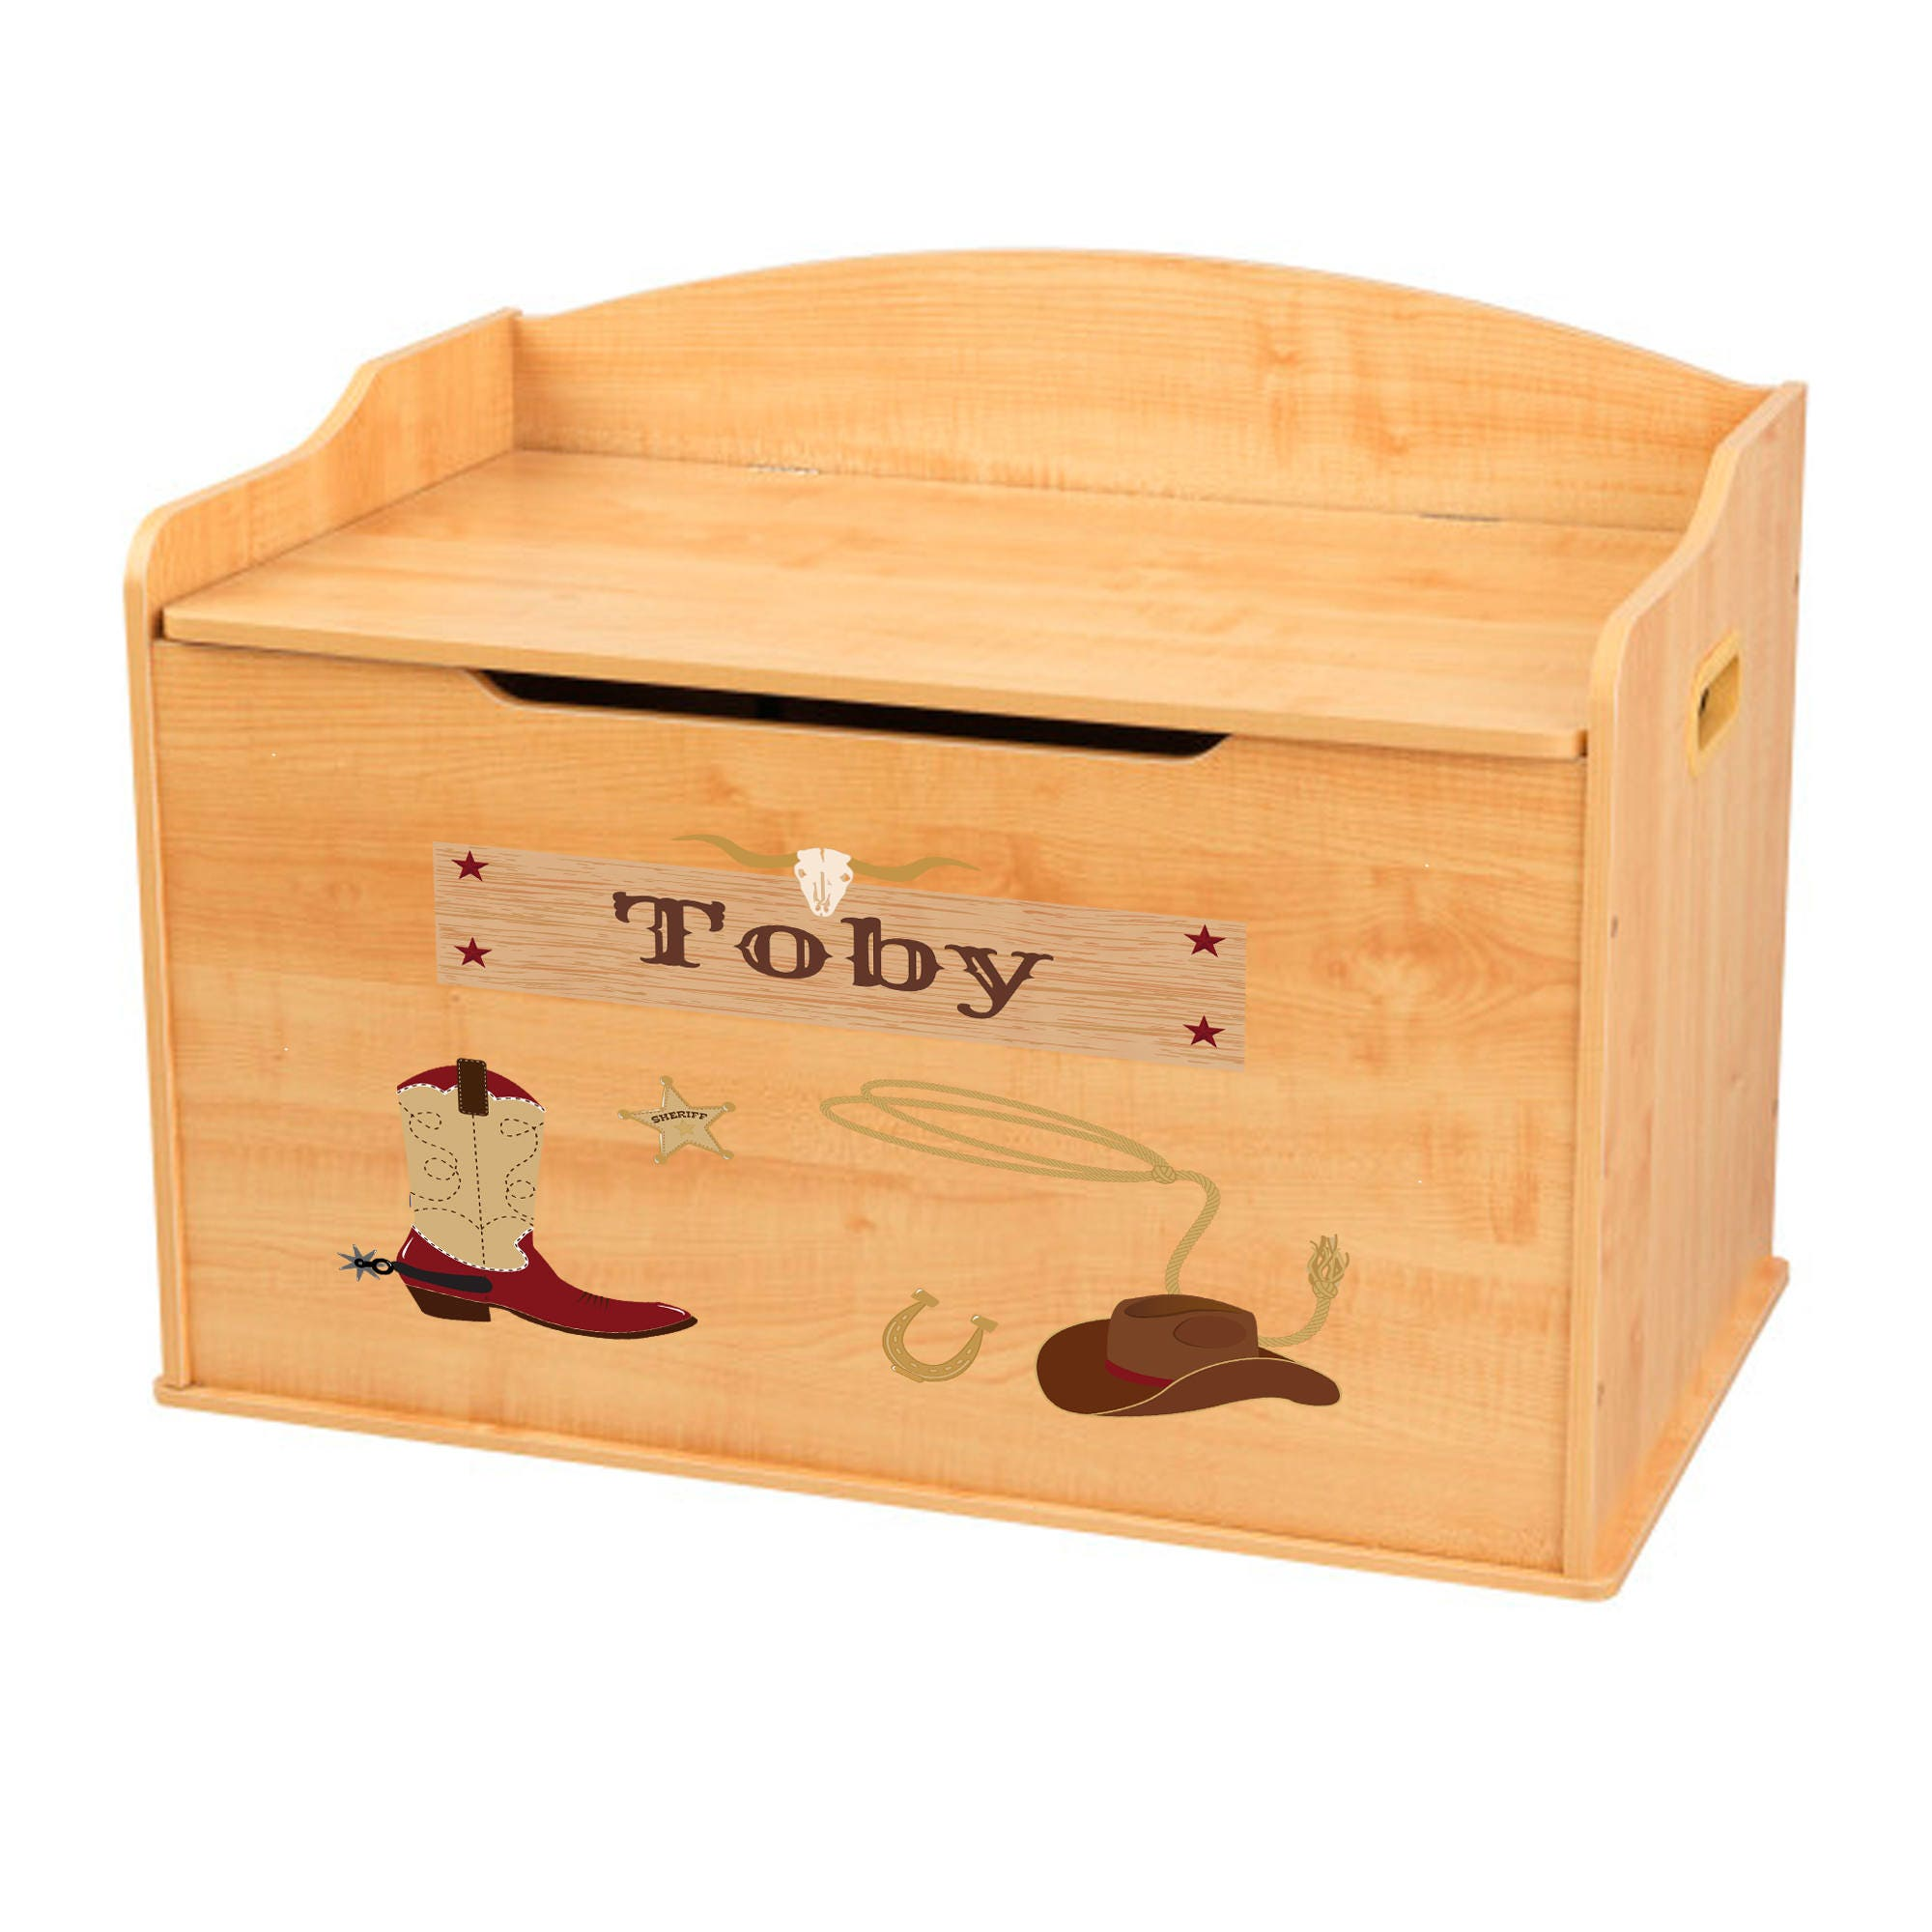 personalized wild west natural toy box bench wood toybox kidkraft custom  toy chest for boys girl playroom baby gift nursery benc-kk-nat-247